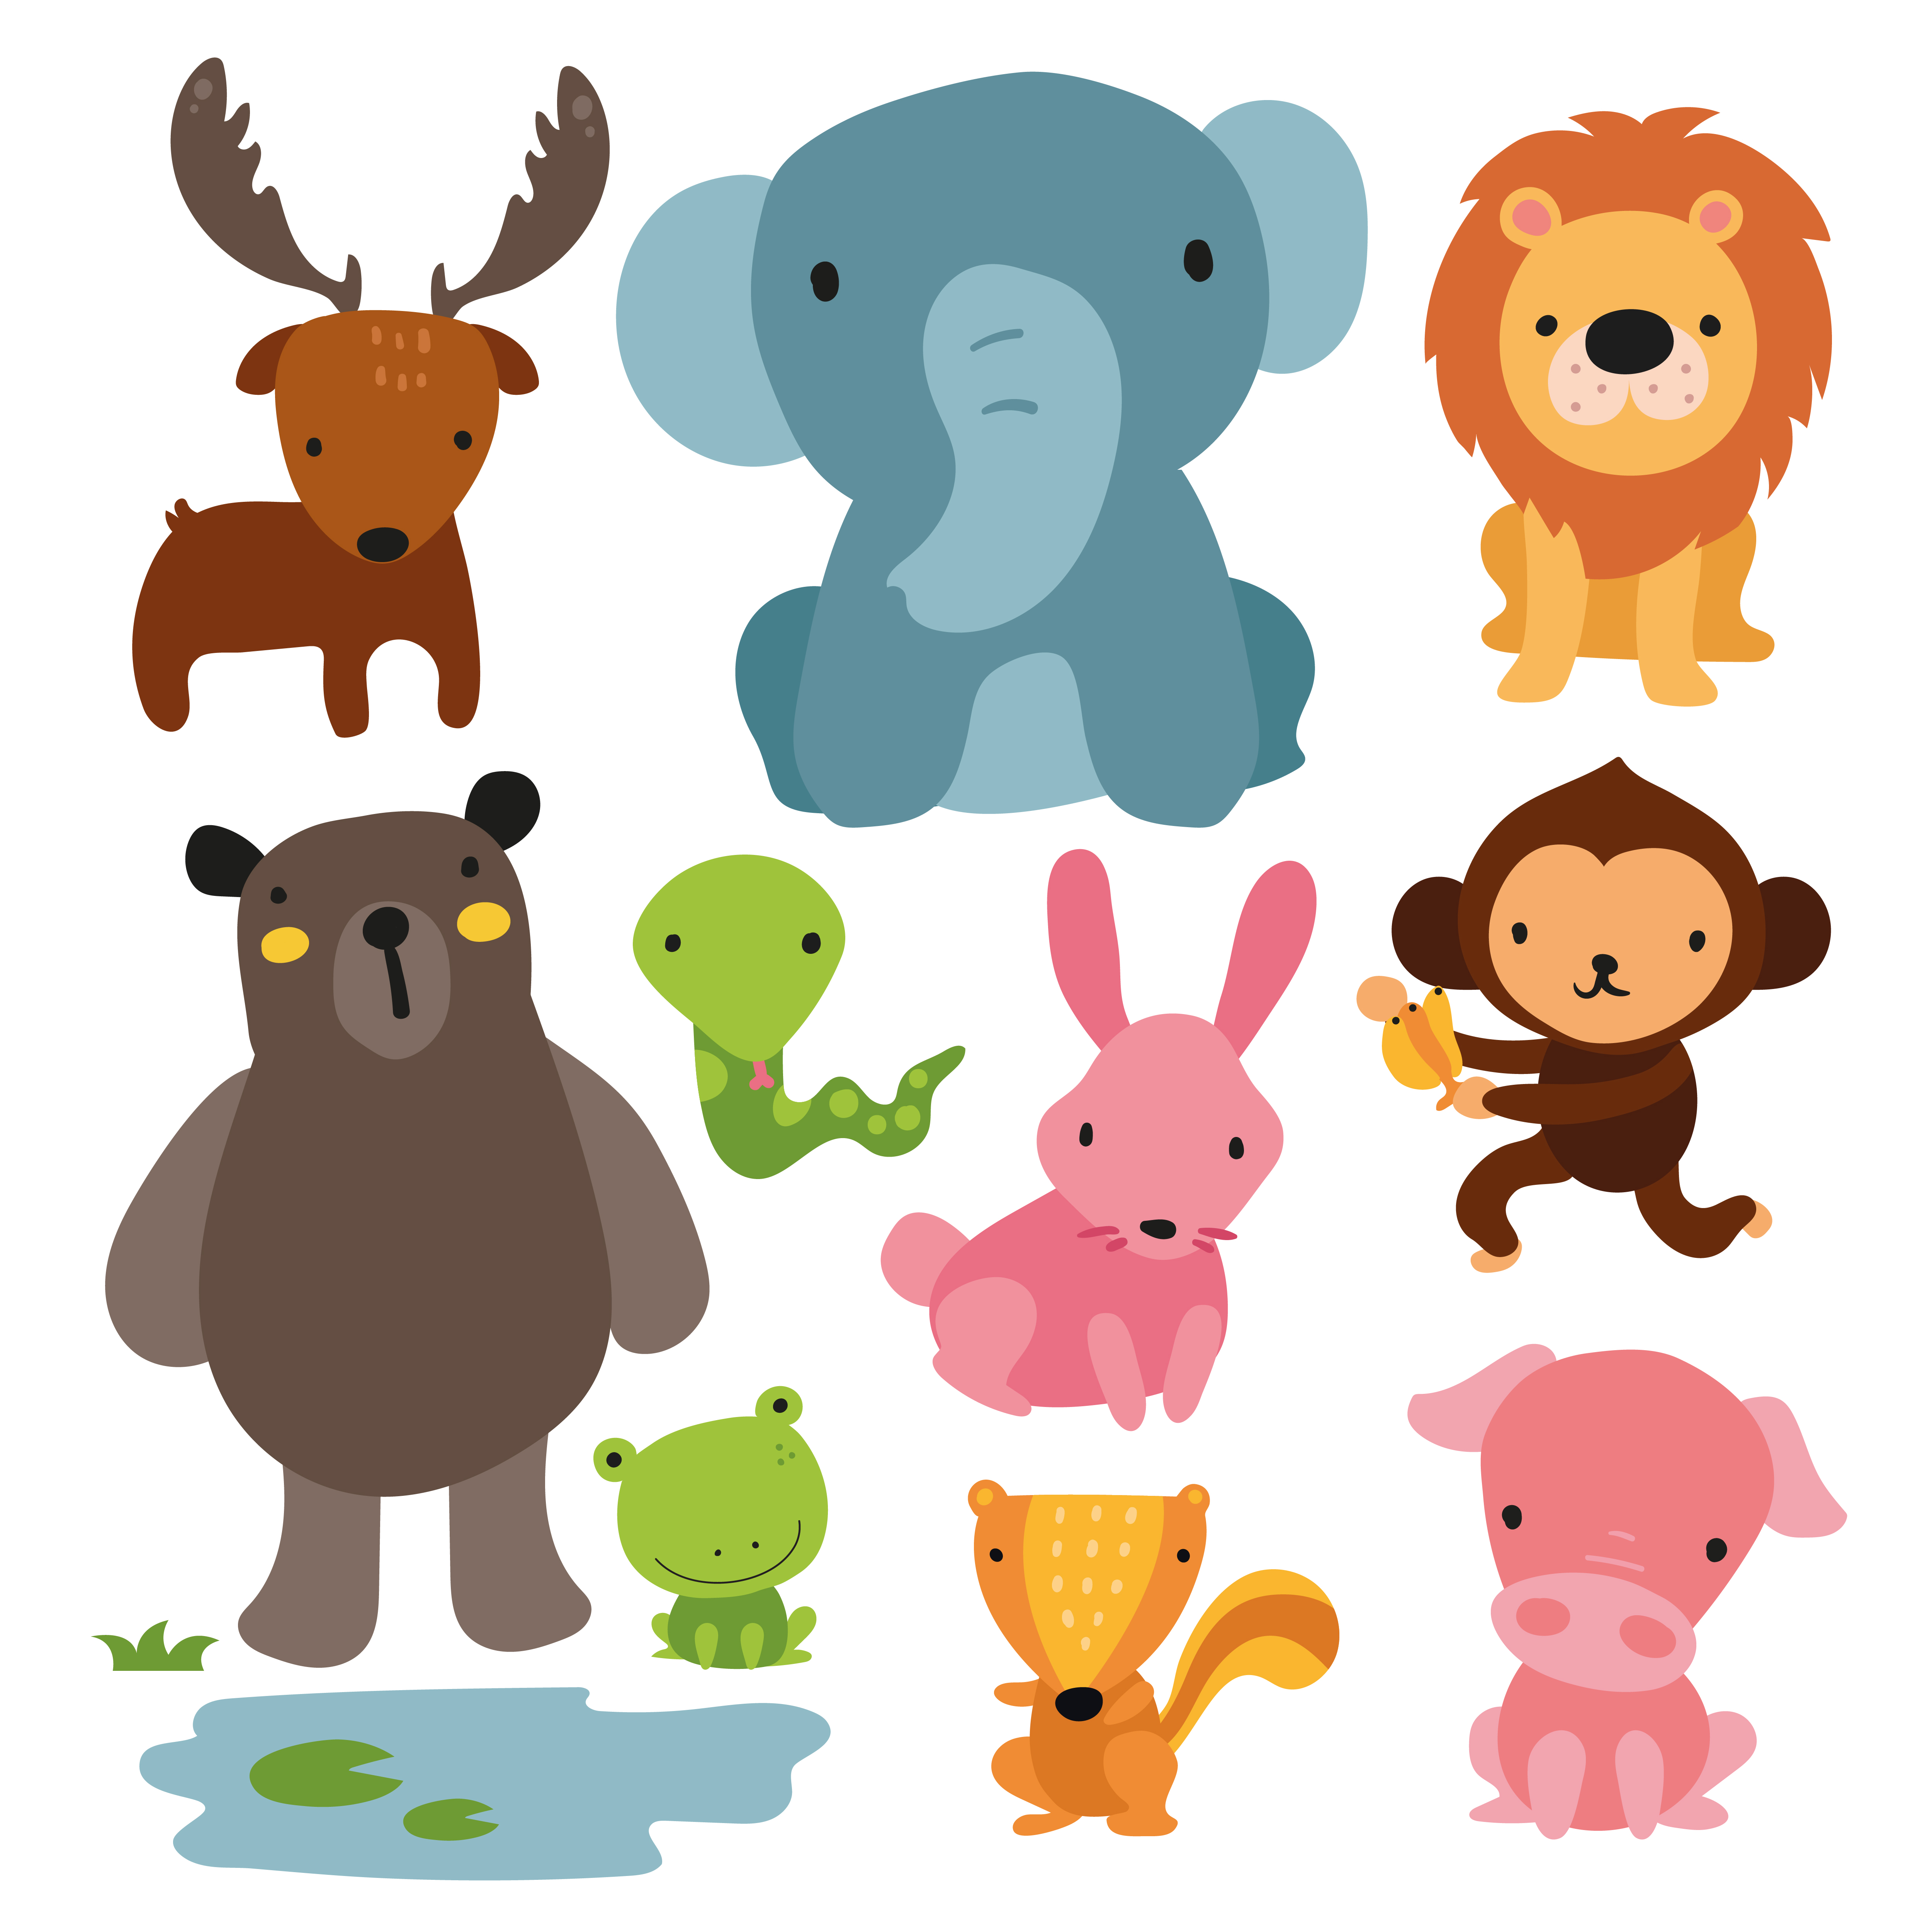 animals character design - Download Free Vectors, Clipart ...